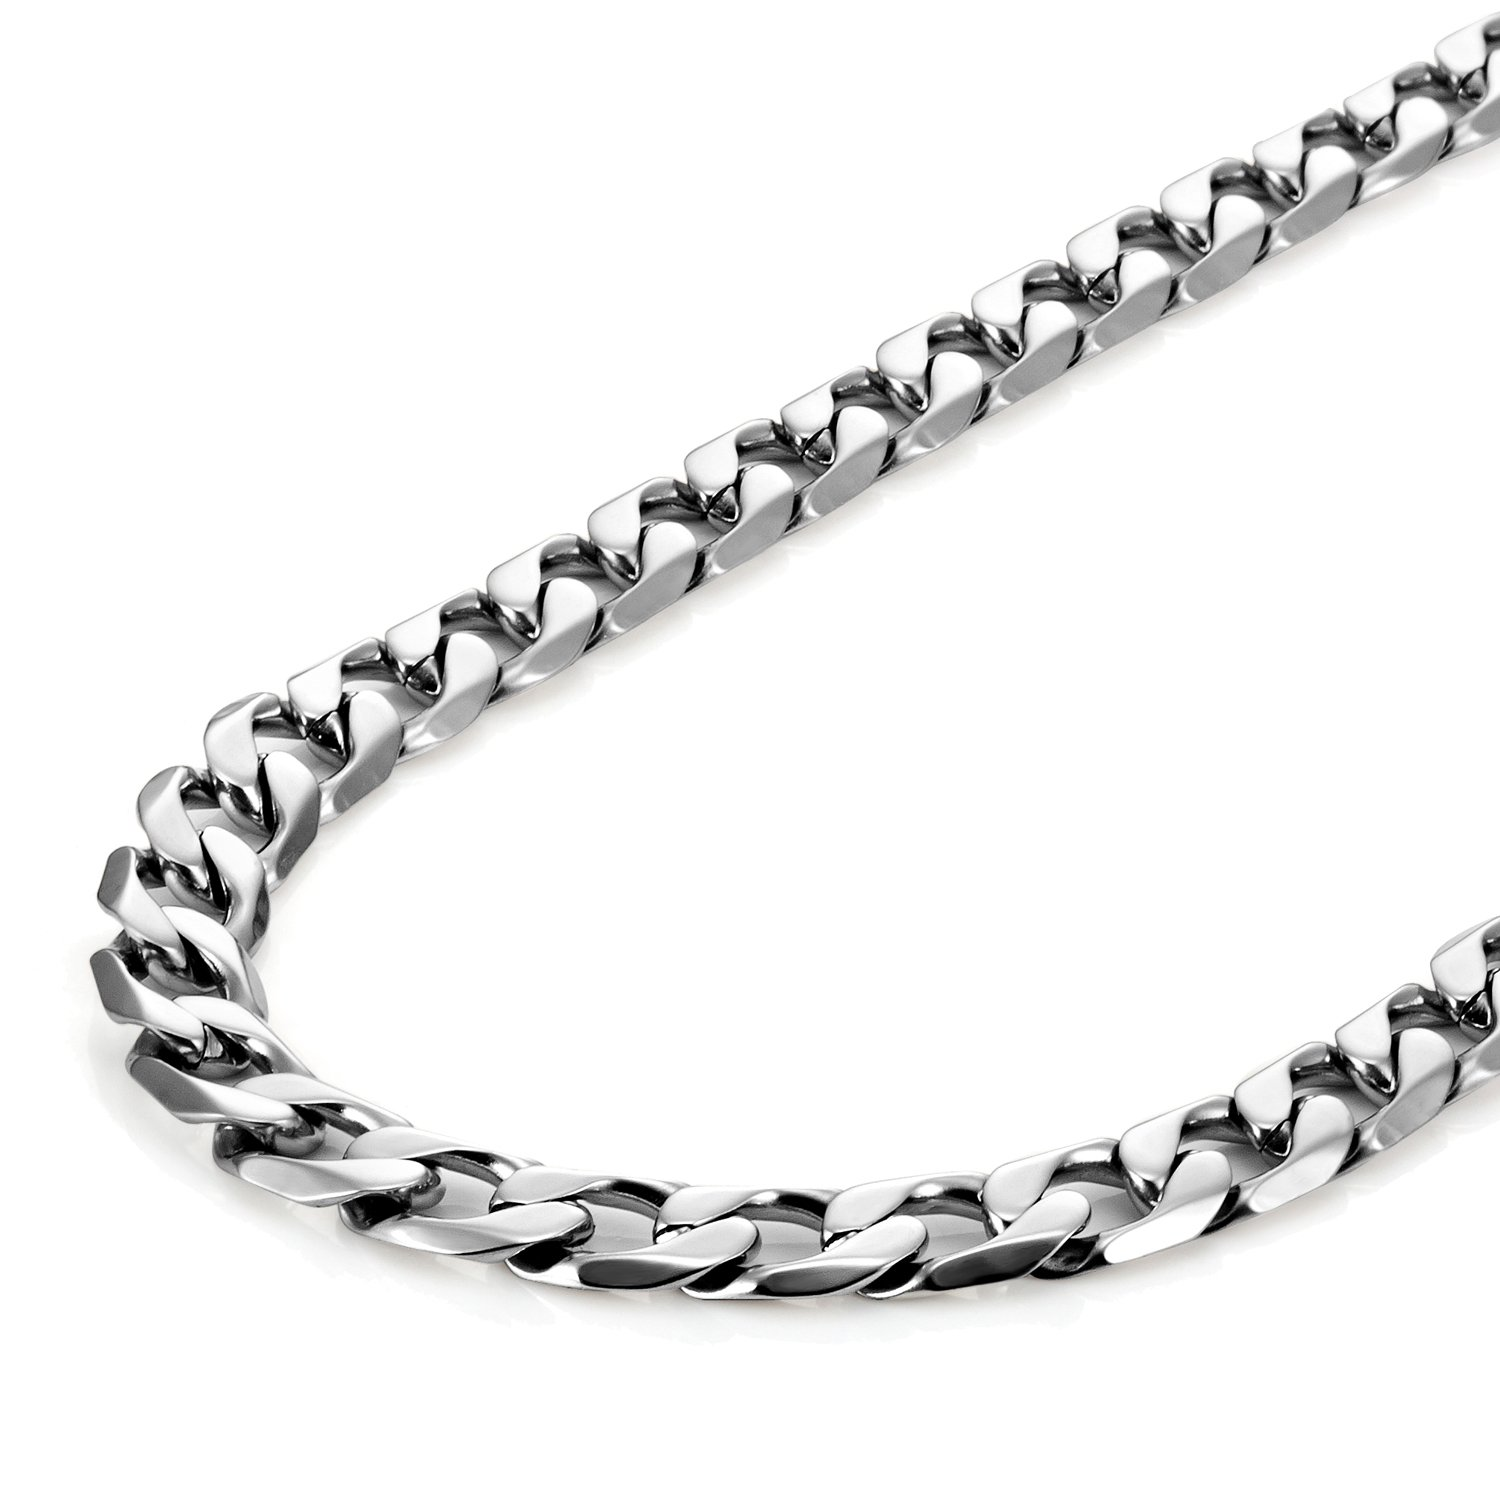 Urban Jewelry Classic Mens Necklace 316L Stainless Steel Silver Chain Color 18,21,23 6mm